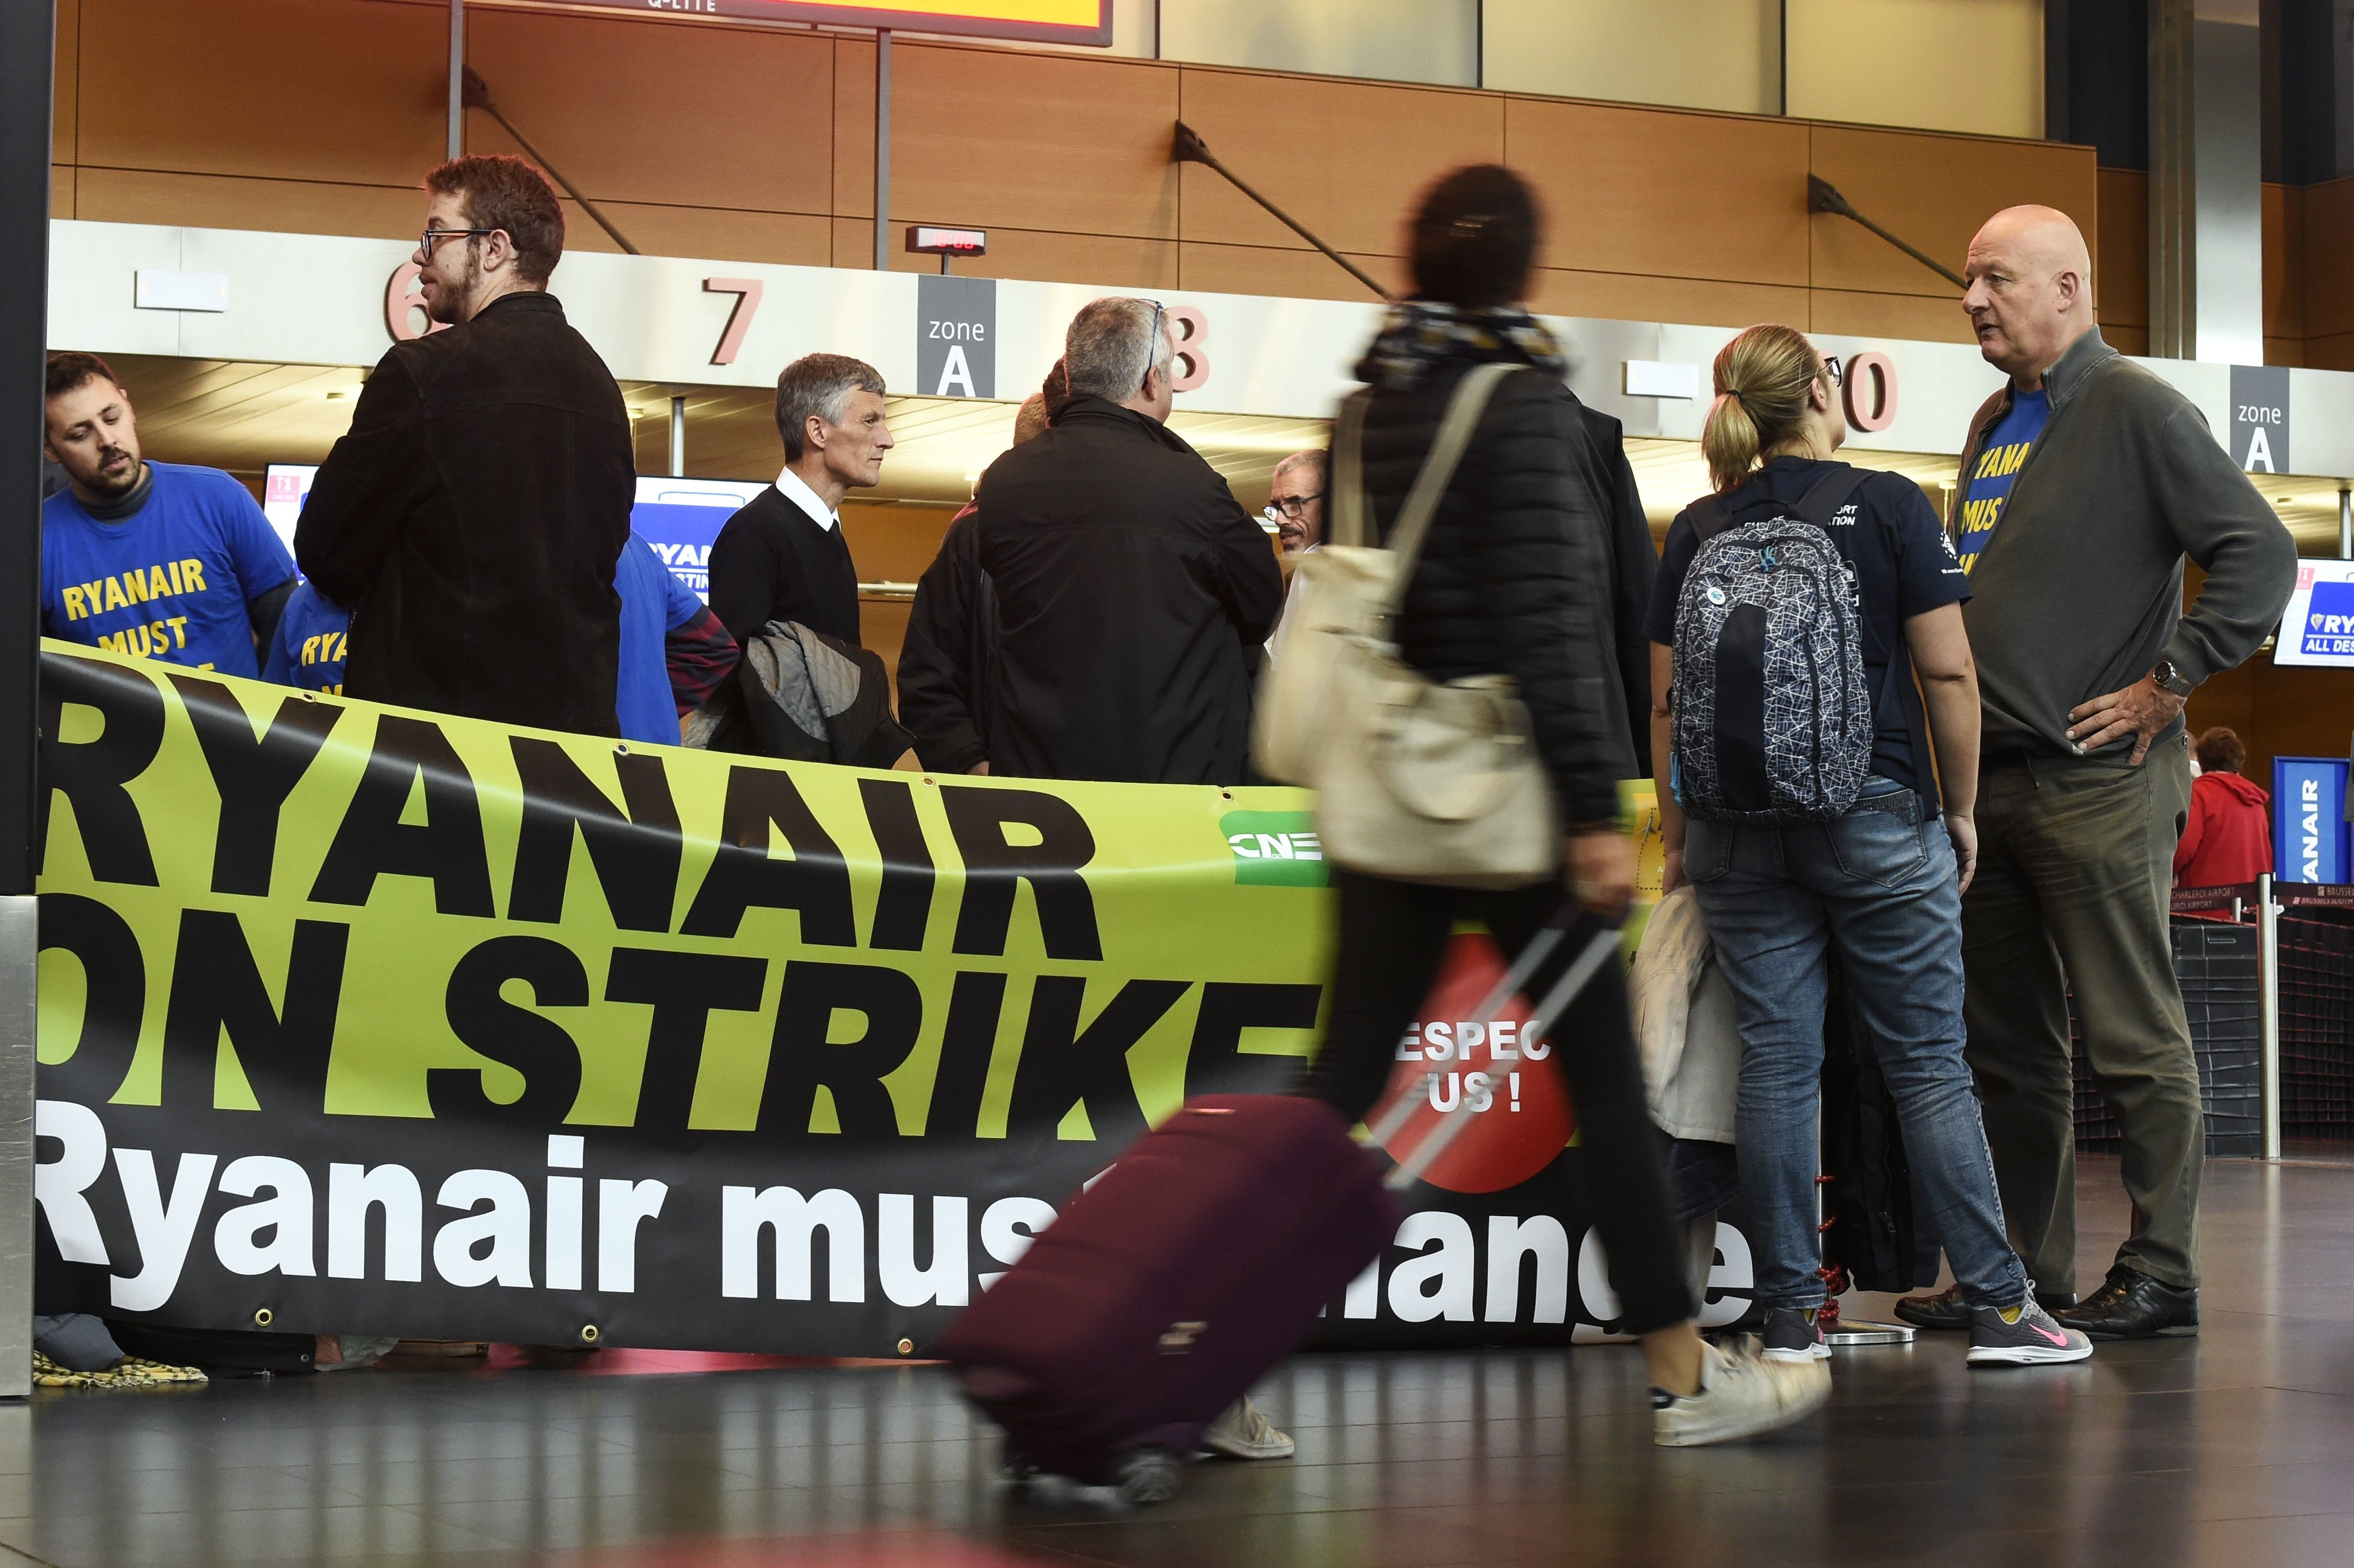 Ryanair Compensation Row: Airline Still Denies It Should Pay Out To